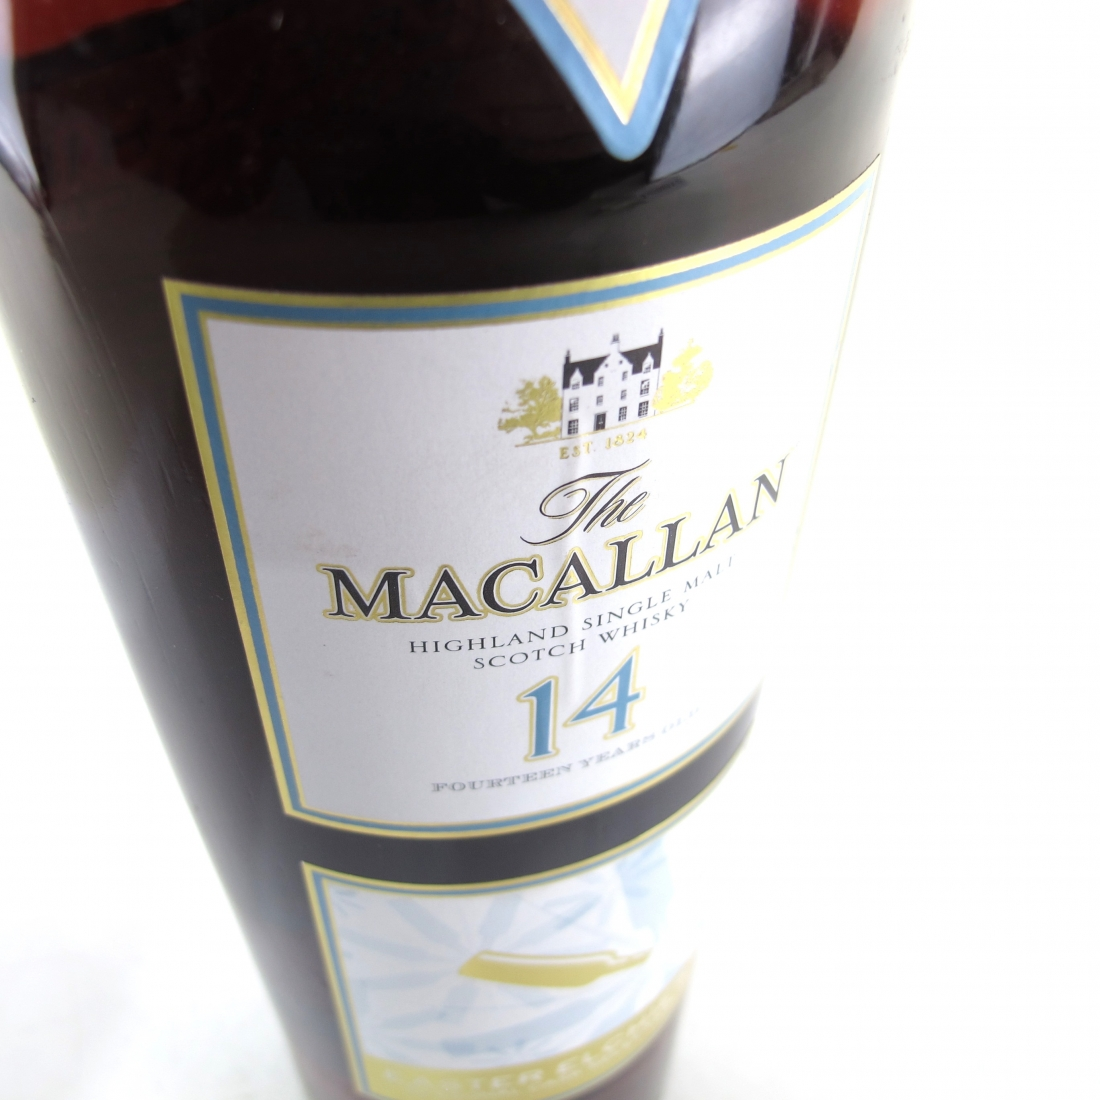 Macallan 1991 Easter Elchies Seasonal Selection 14 Year Old / Winter